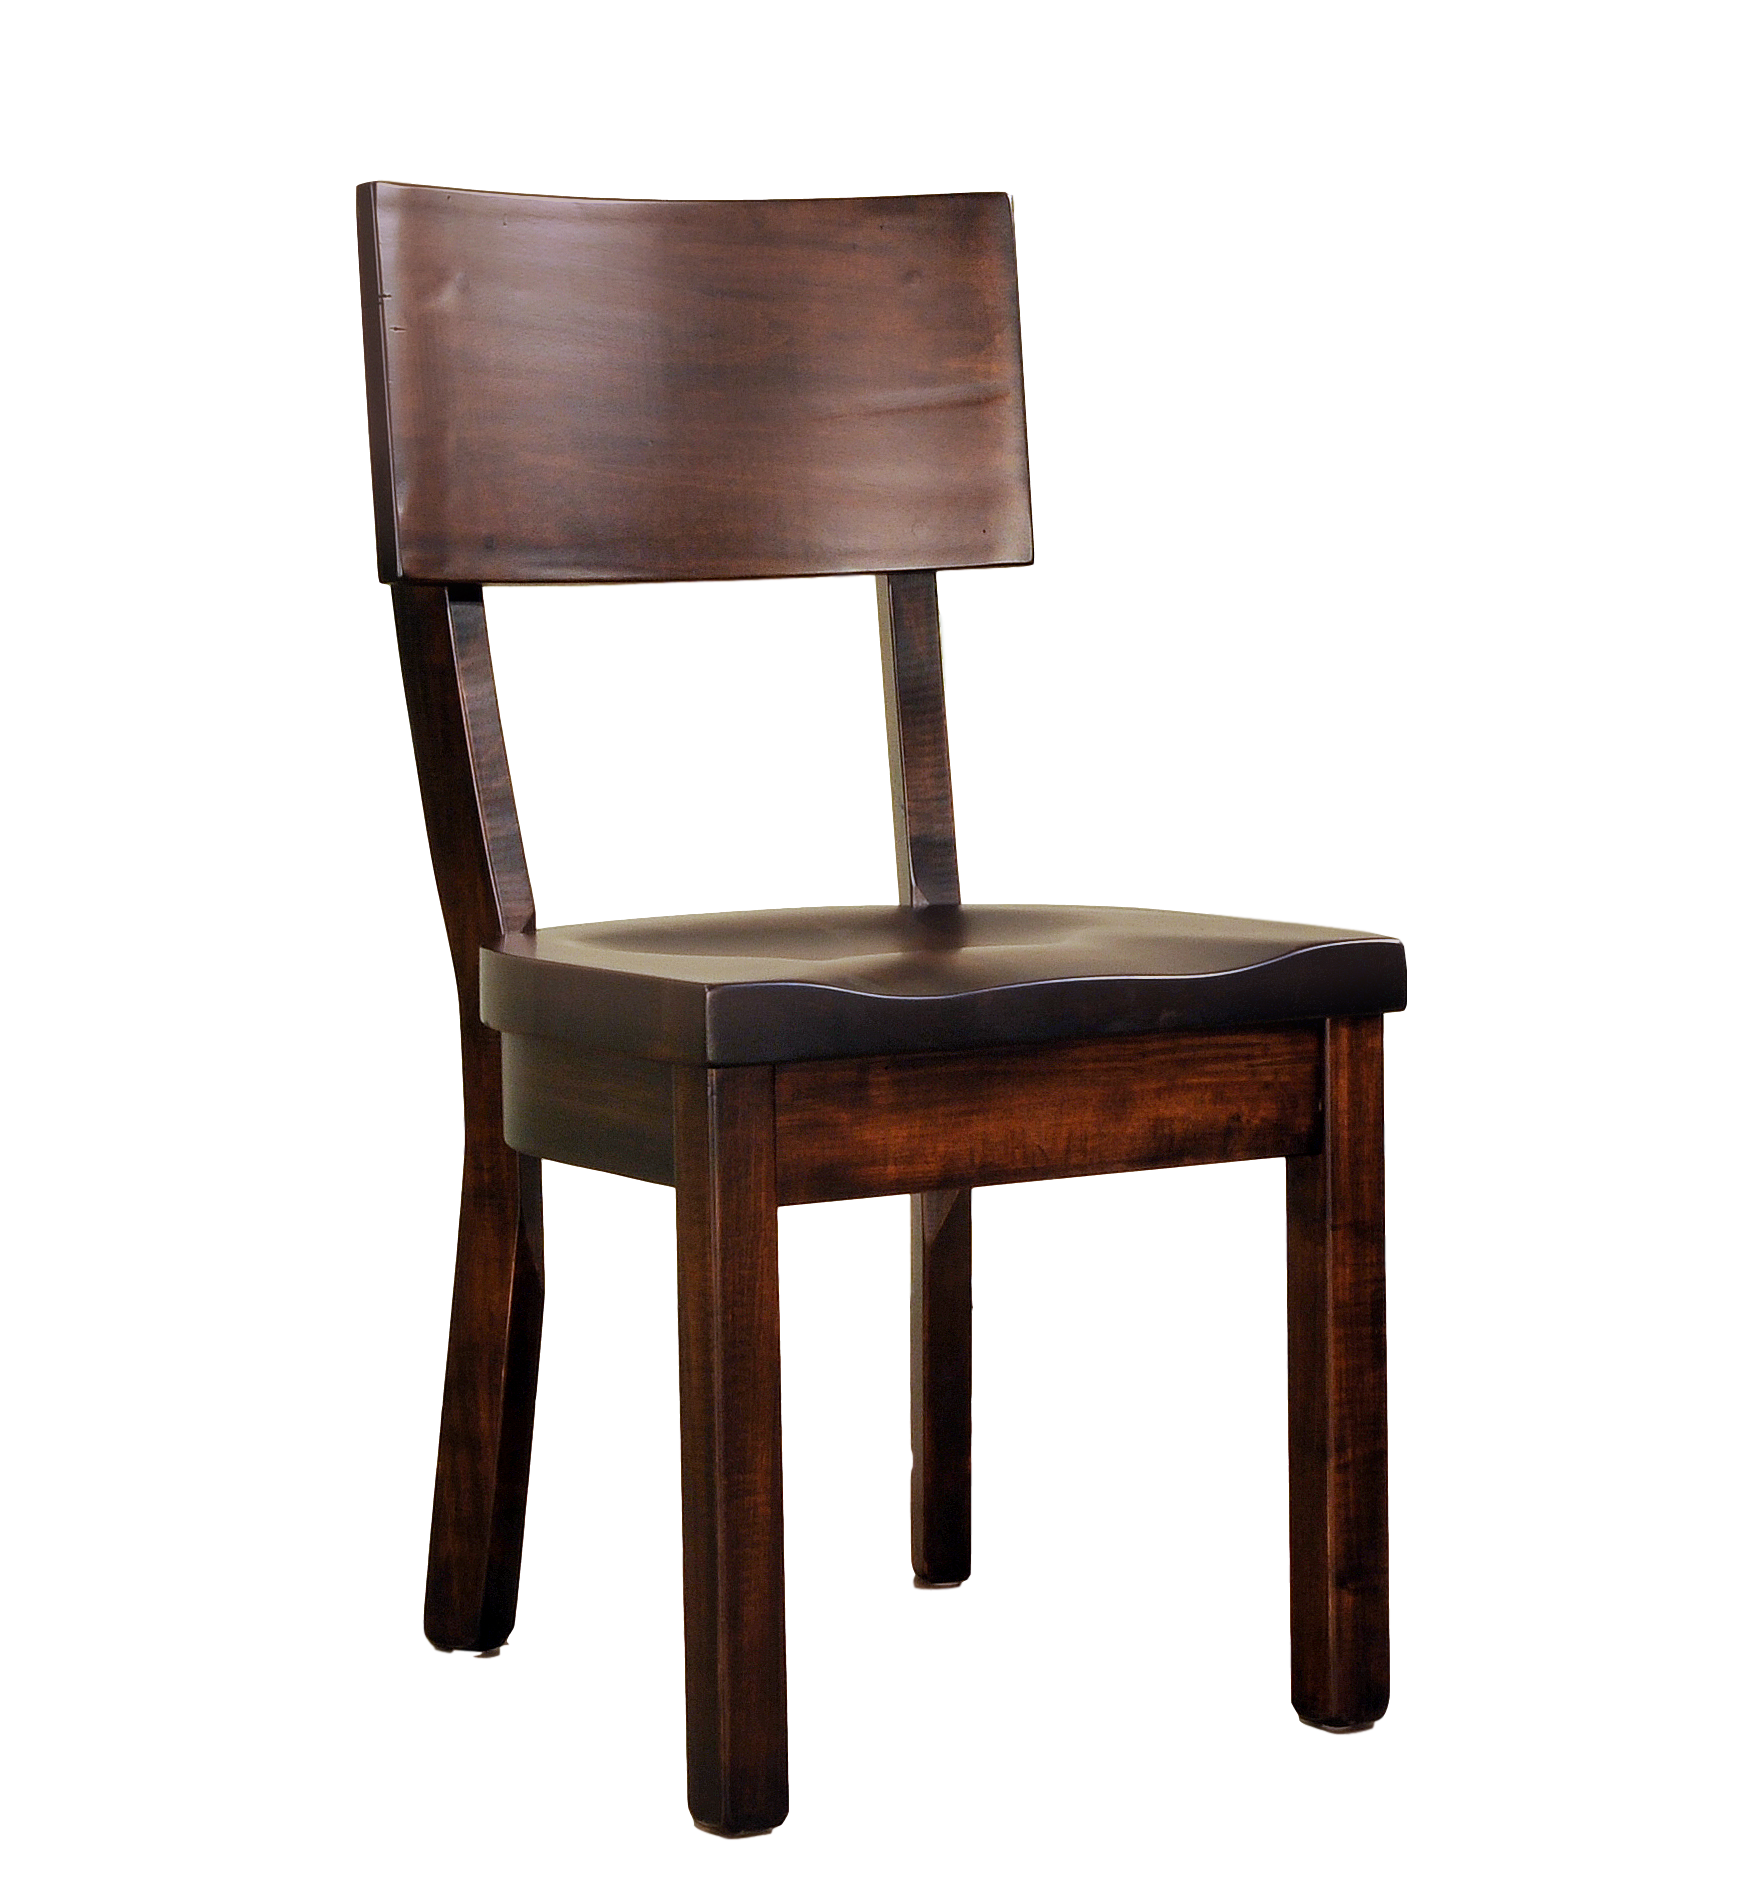 Museum Dining Chair Home Envy Furnishings Solid Wood